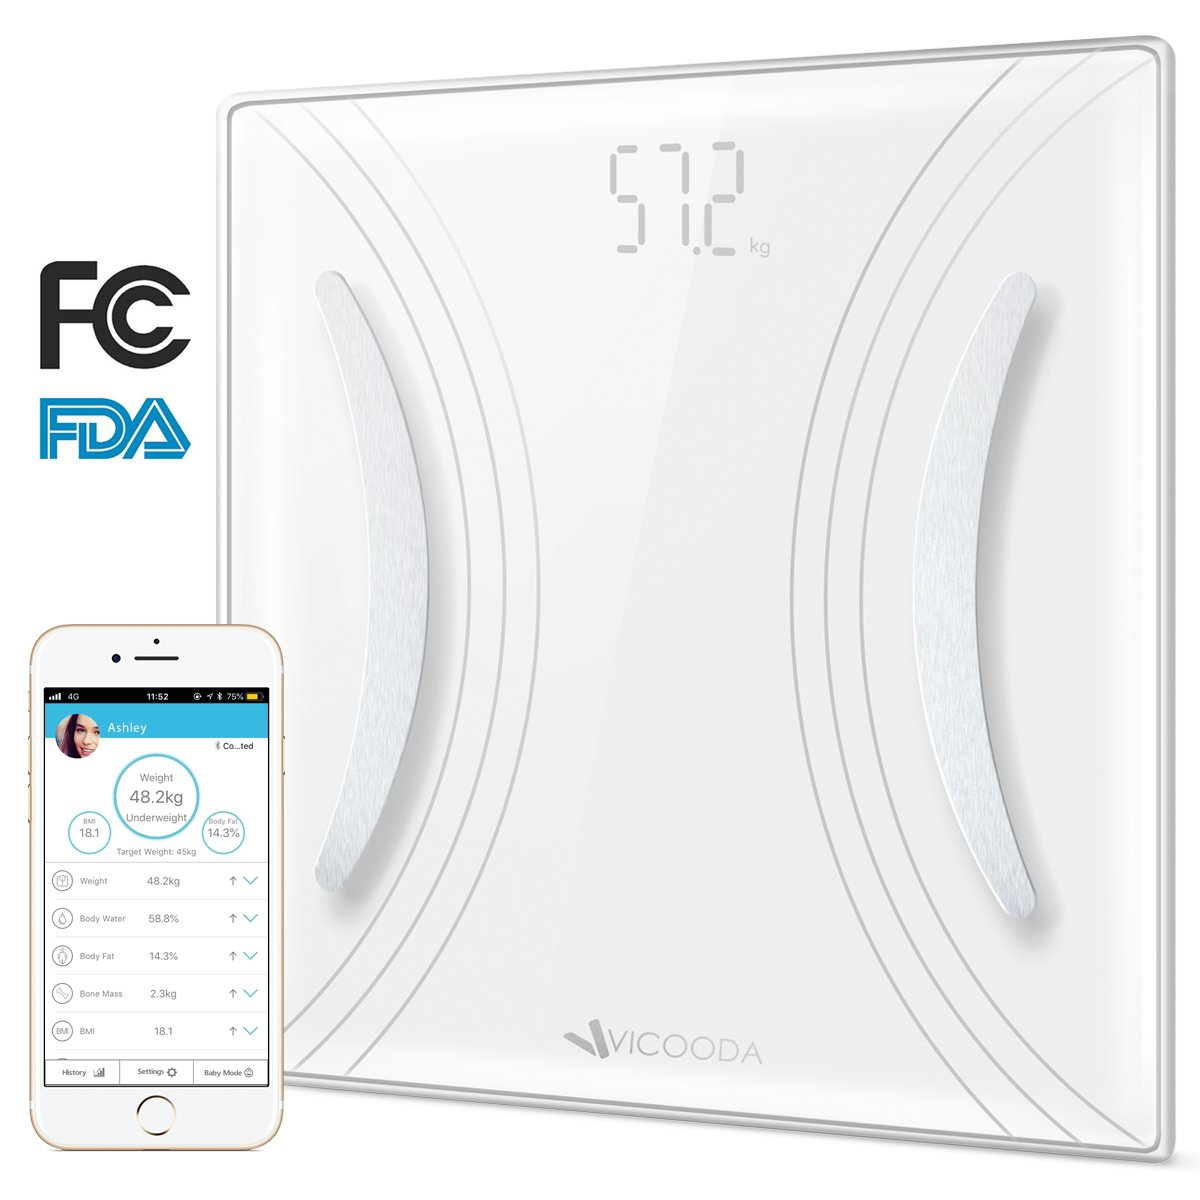 179c26f8e77c Digital Bathroom Body Fat Scale,VICOODA Weigh Scale with iOS and Android  App Bluetooth Wireless...